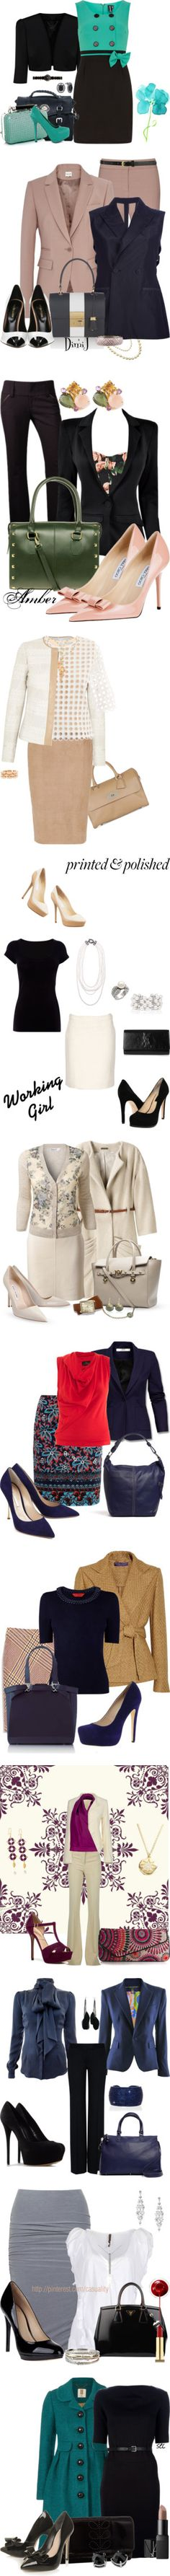 """""""Office Dress Code"""" by styleexplorer-407 ❤ liked on Polyvore"""